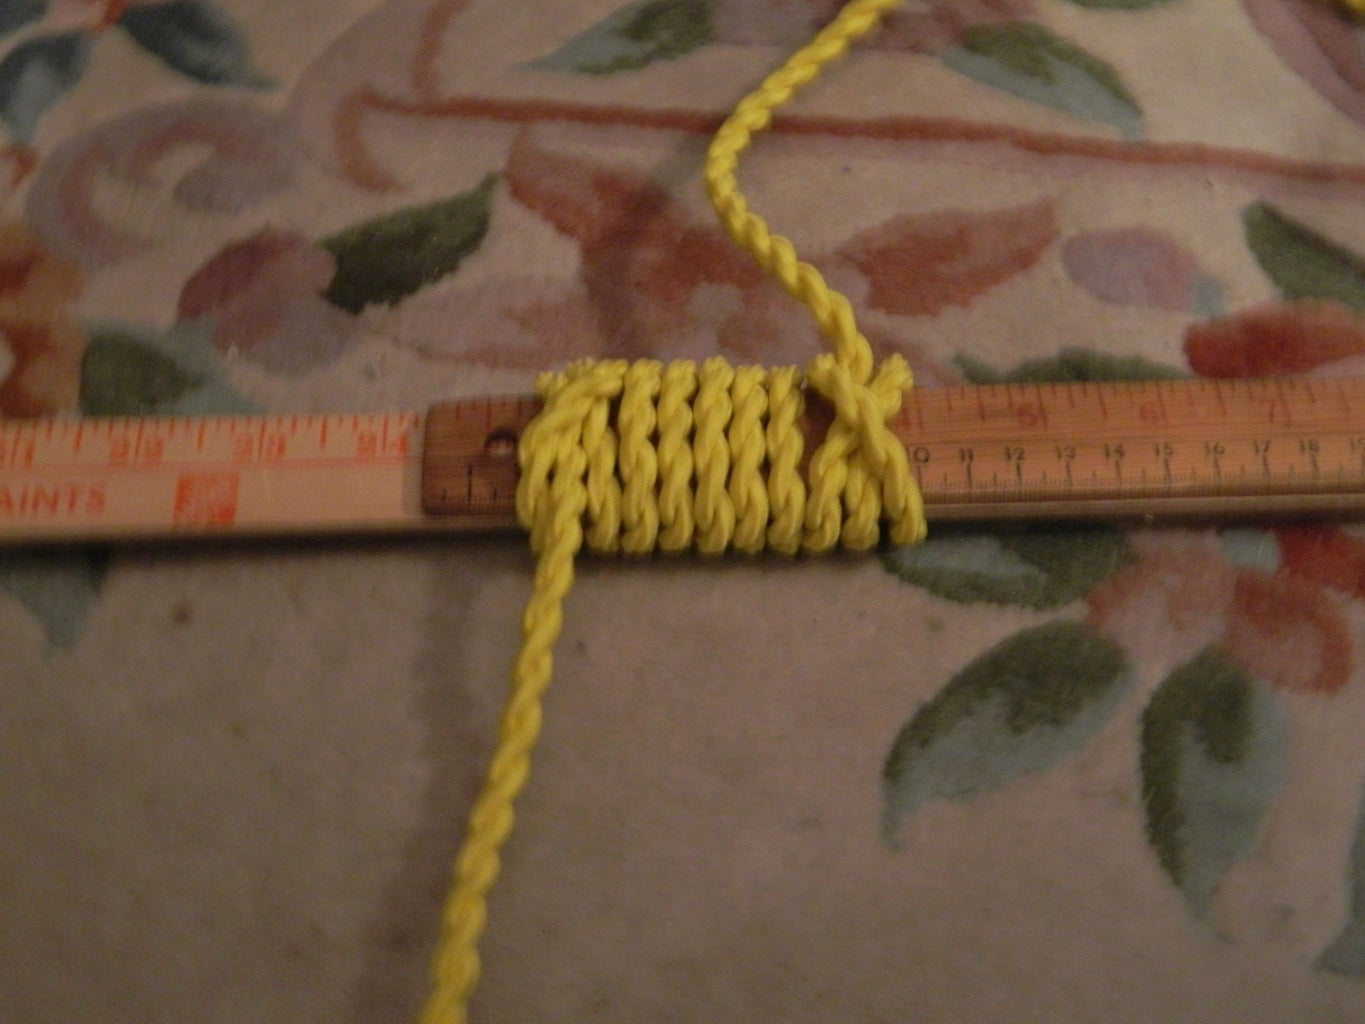 Another Clove Hitch